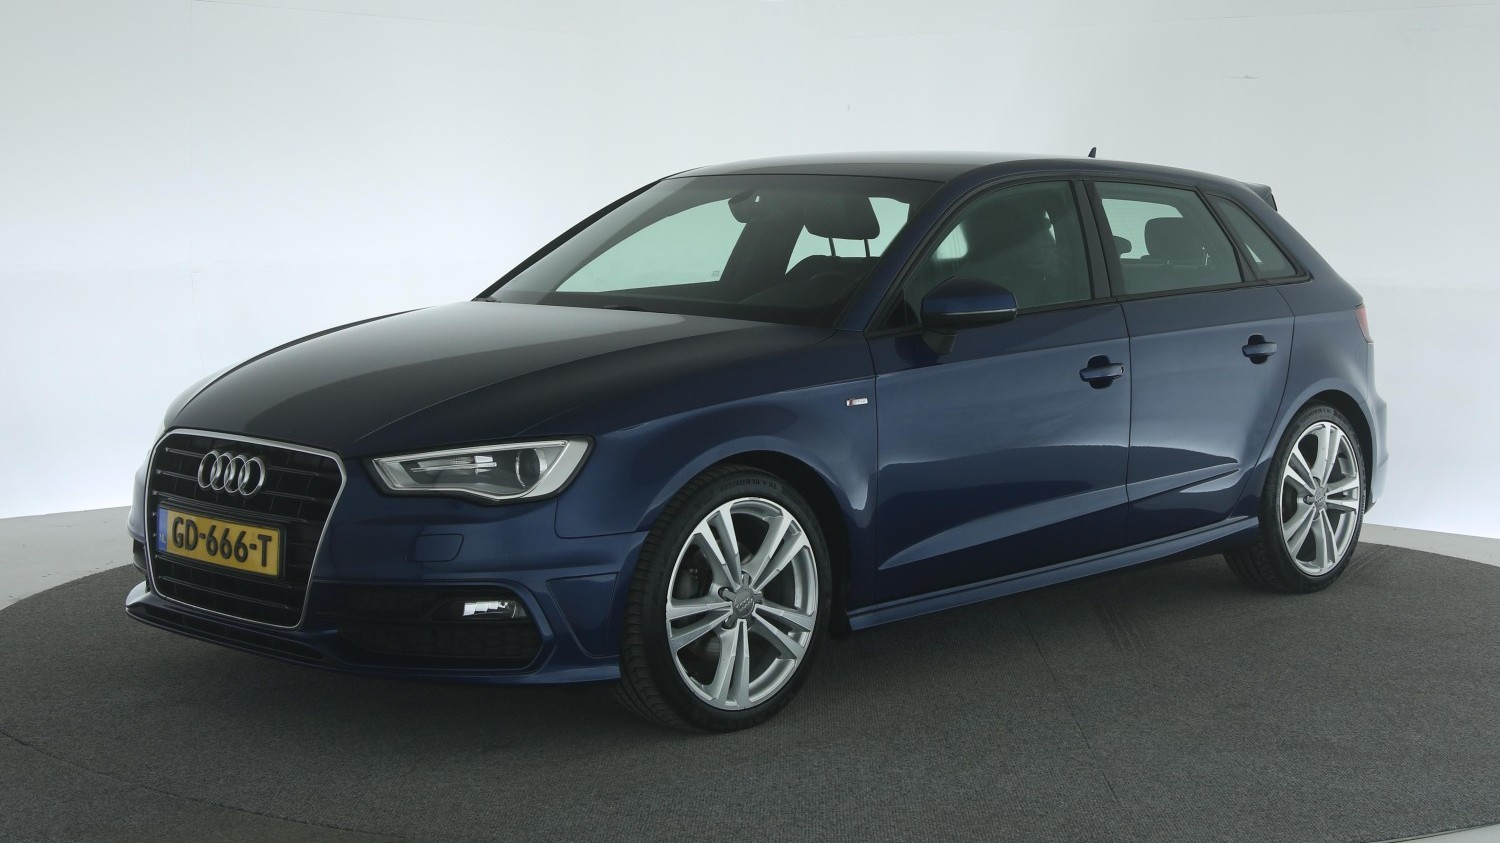 Audi A3 Hatchback 2015 GD-666-T 1